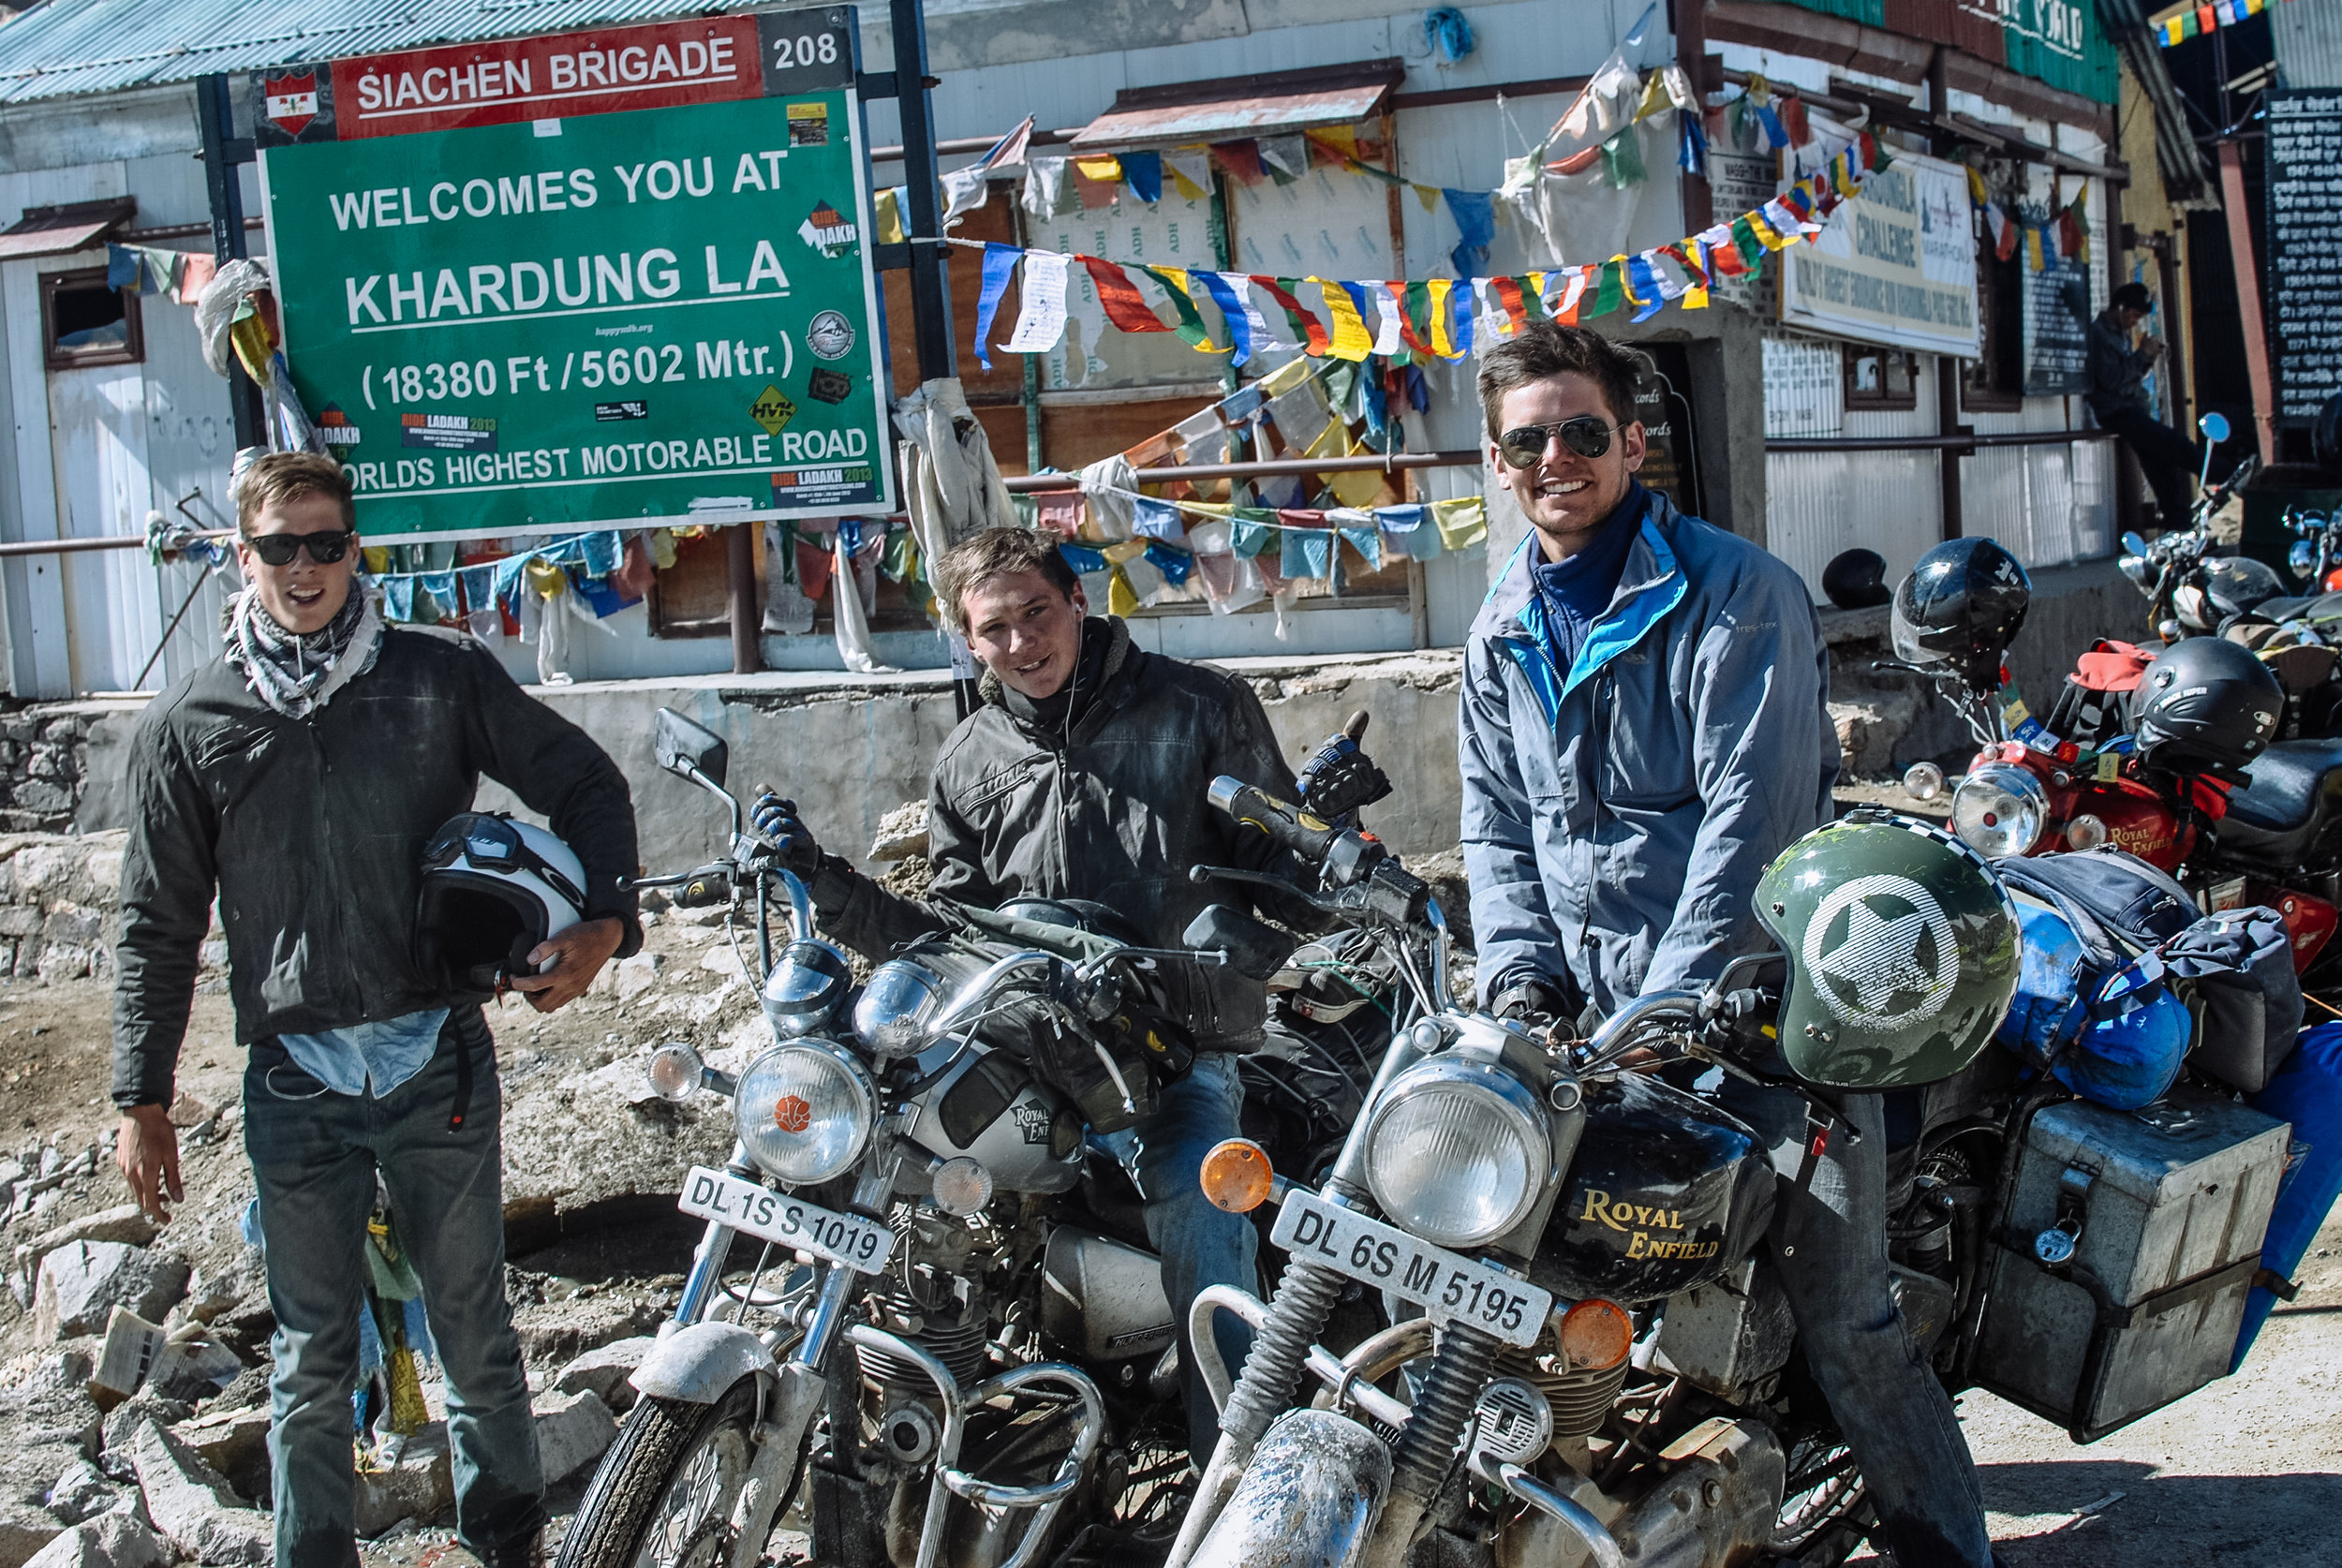 At the top of the Khardung La